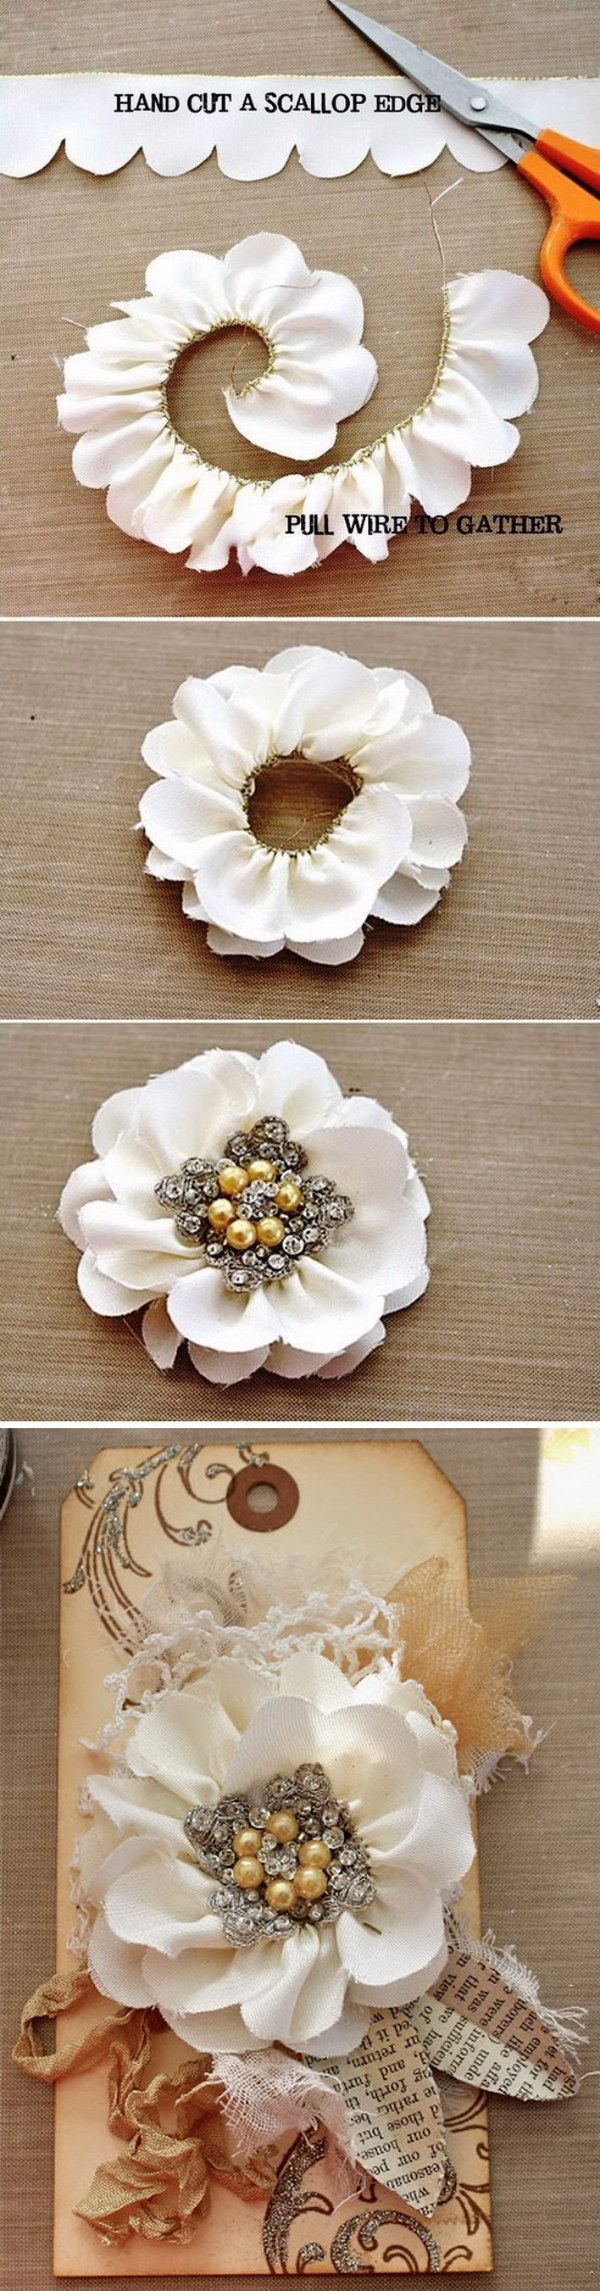 DIY Scalloped Edge Flowers